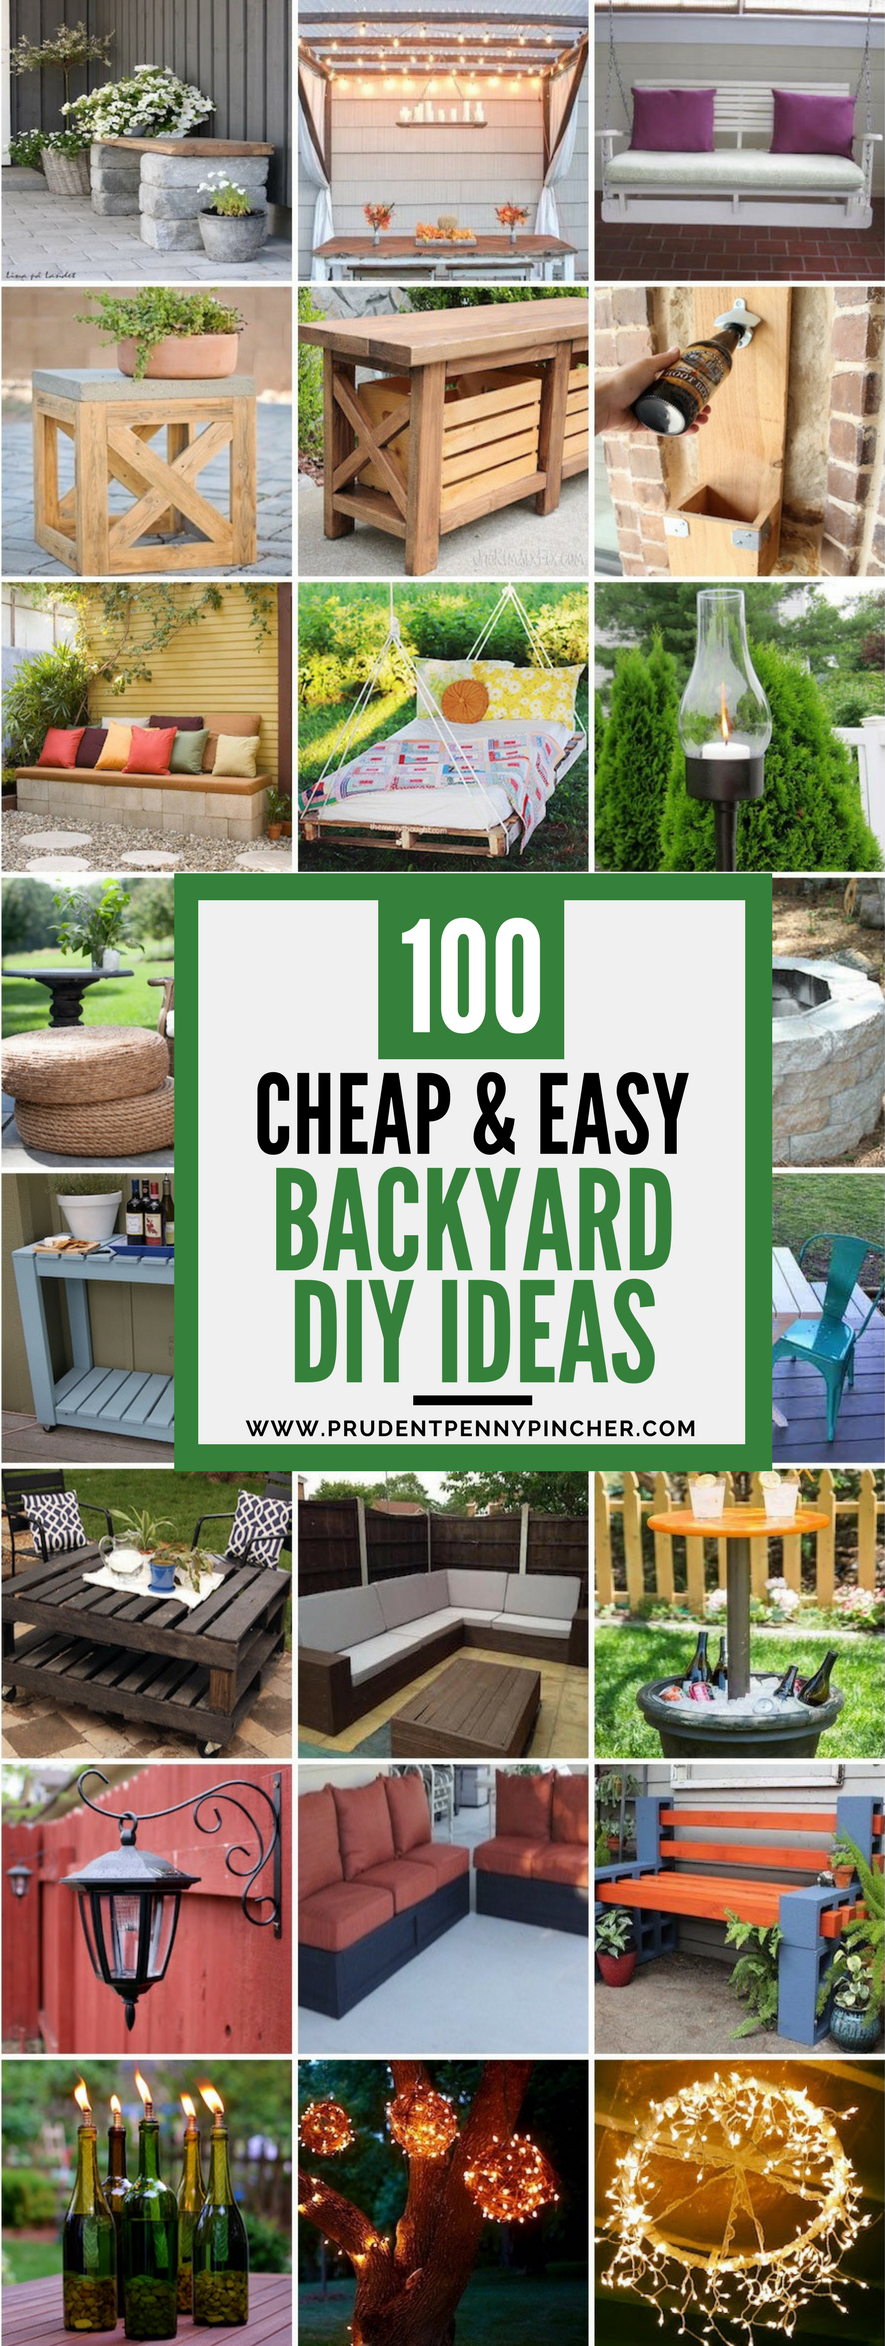 100 Cheap And Easy Diy Backyard Ideas Backyard And with Easy Diy Backyard Ideas